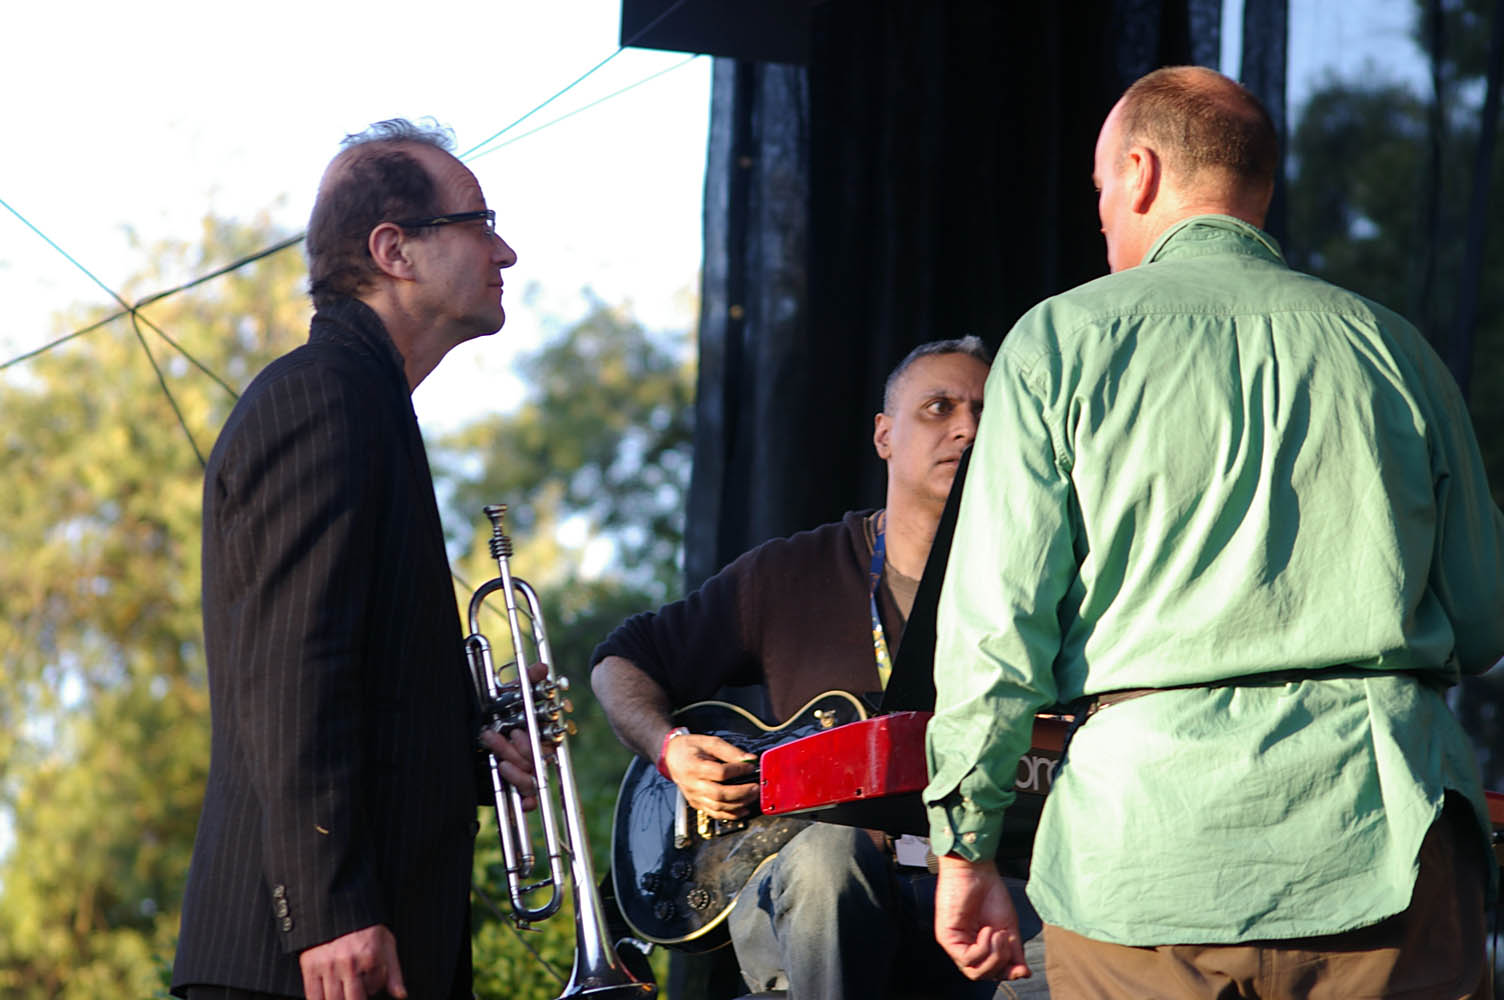 WOMADelaide_All-Star_Gala_set-up_20110314_33_Paul_Brody_+_Nitin_Sawhney_+_PG.jpg